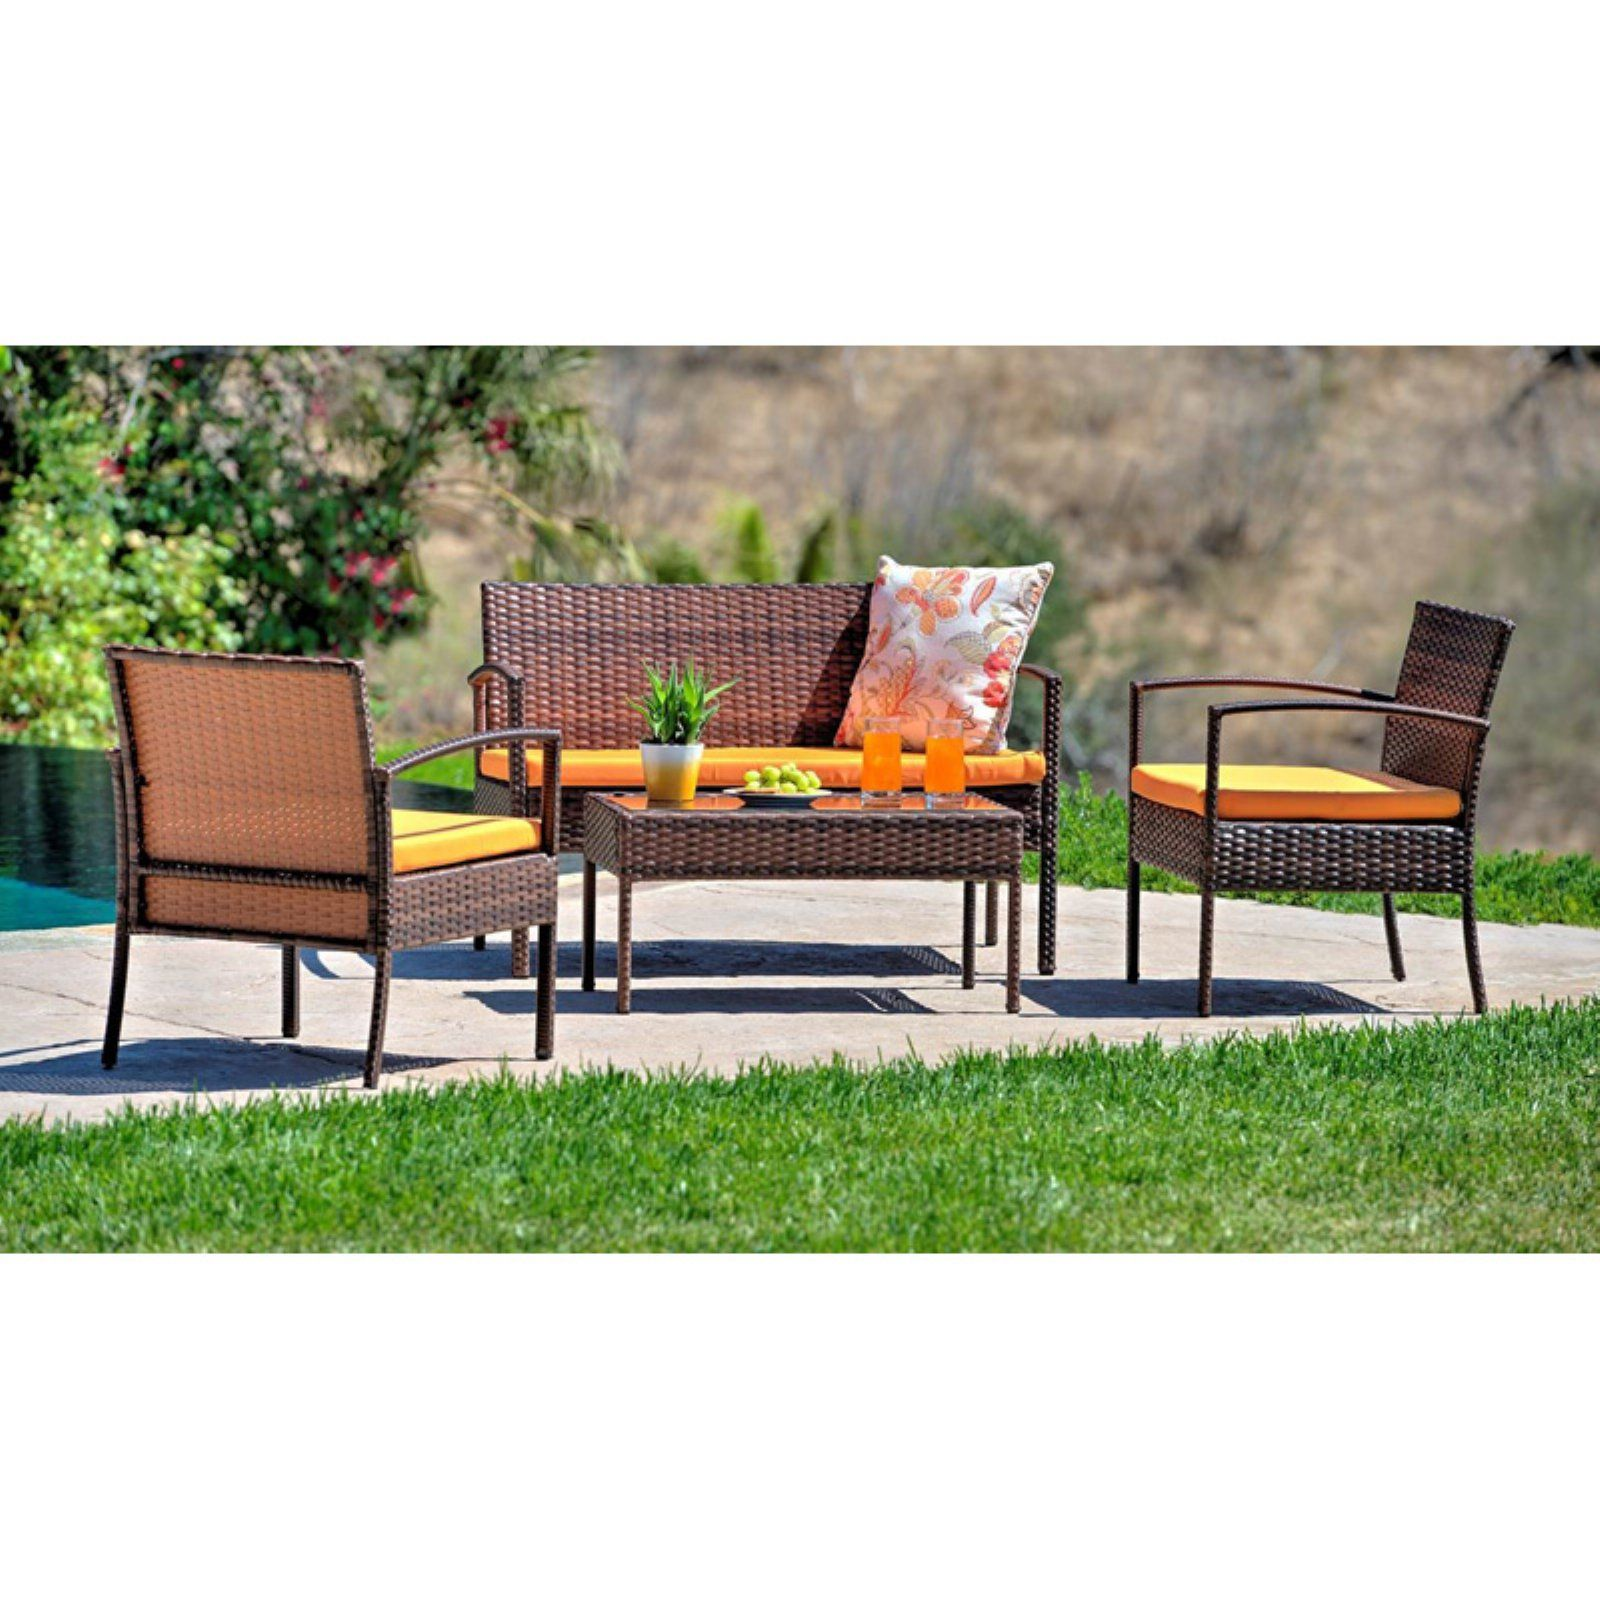 W Unlimited Lucy Collection 4 Piece Patio Outdoor Wicker